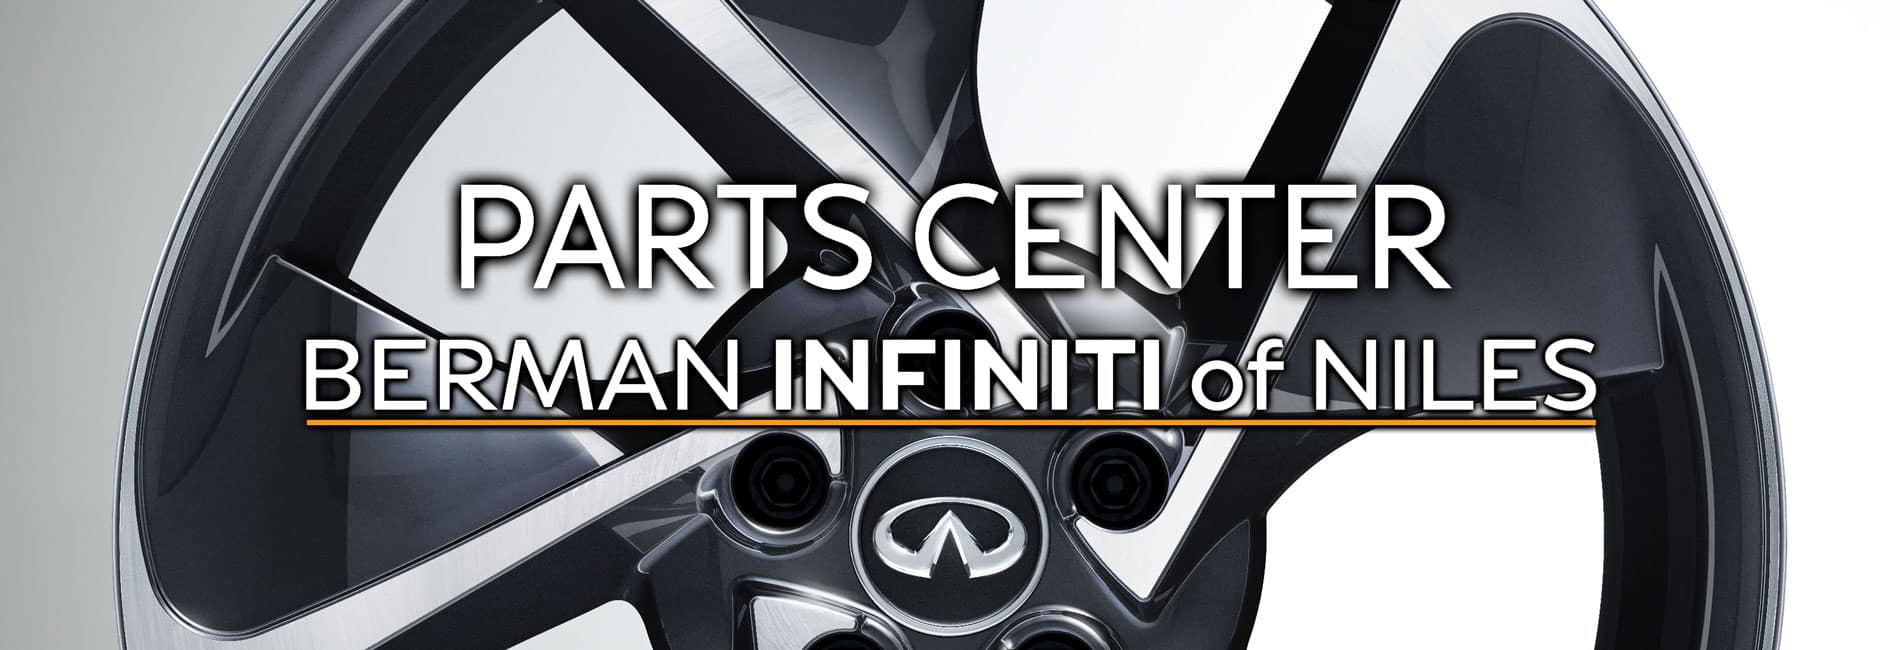 Parts Center at Berman INFINITI of Niles